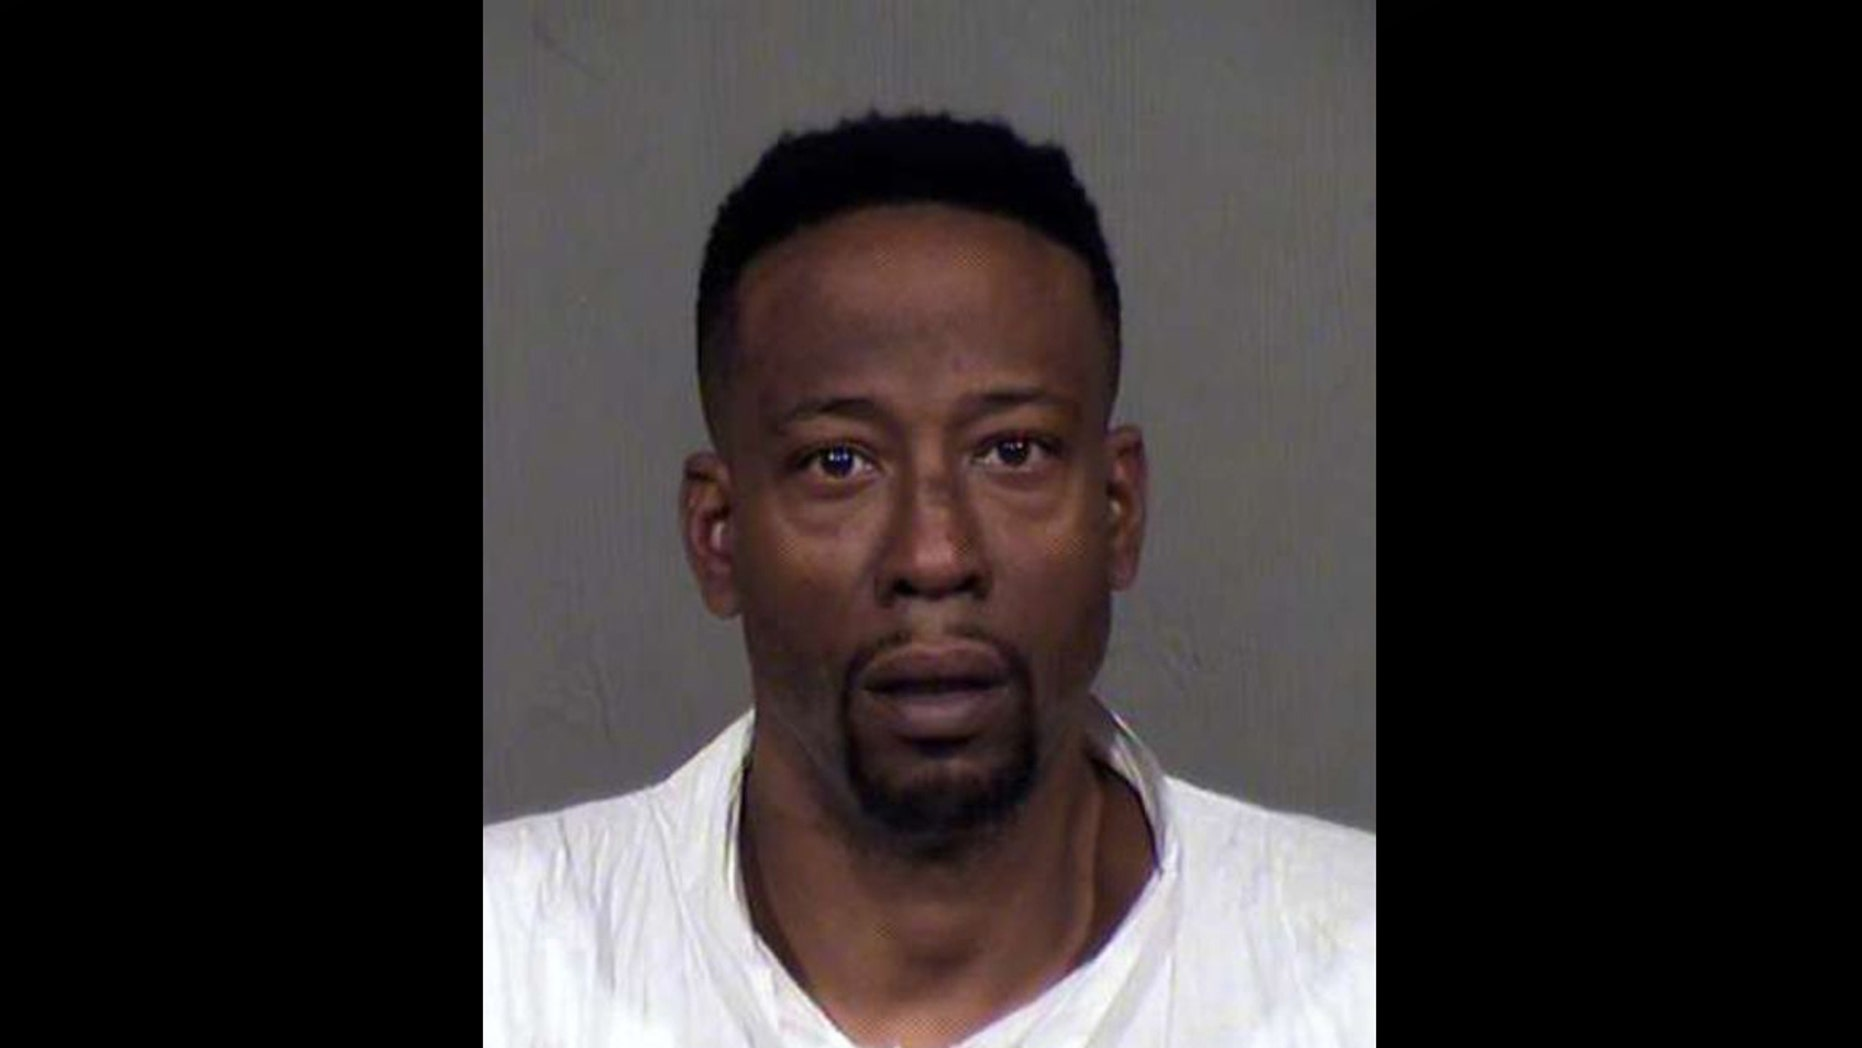 Police on Tuesday identified the suspect as Anthony Milan Ross.